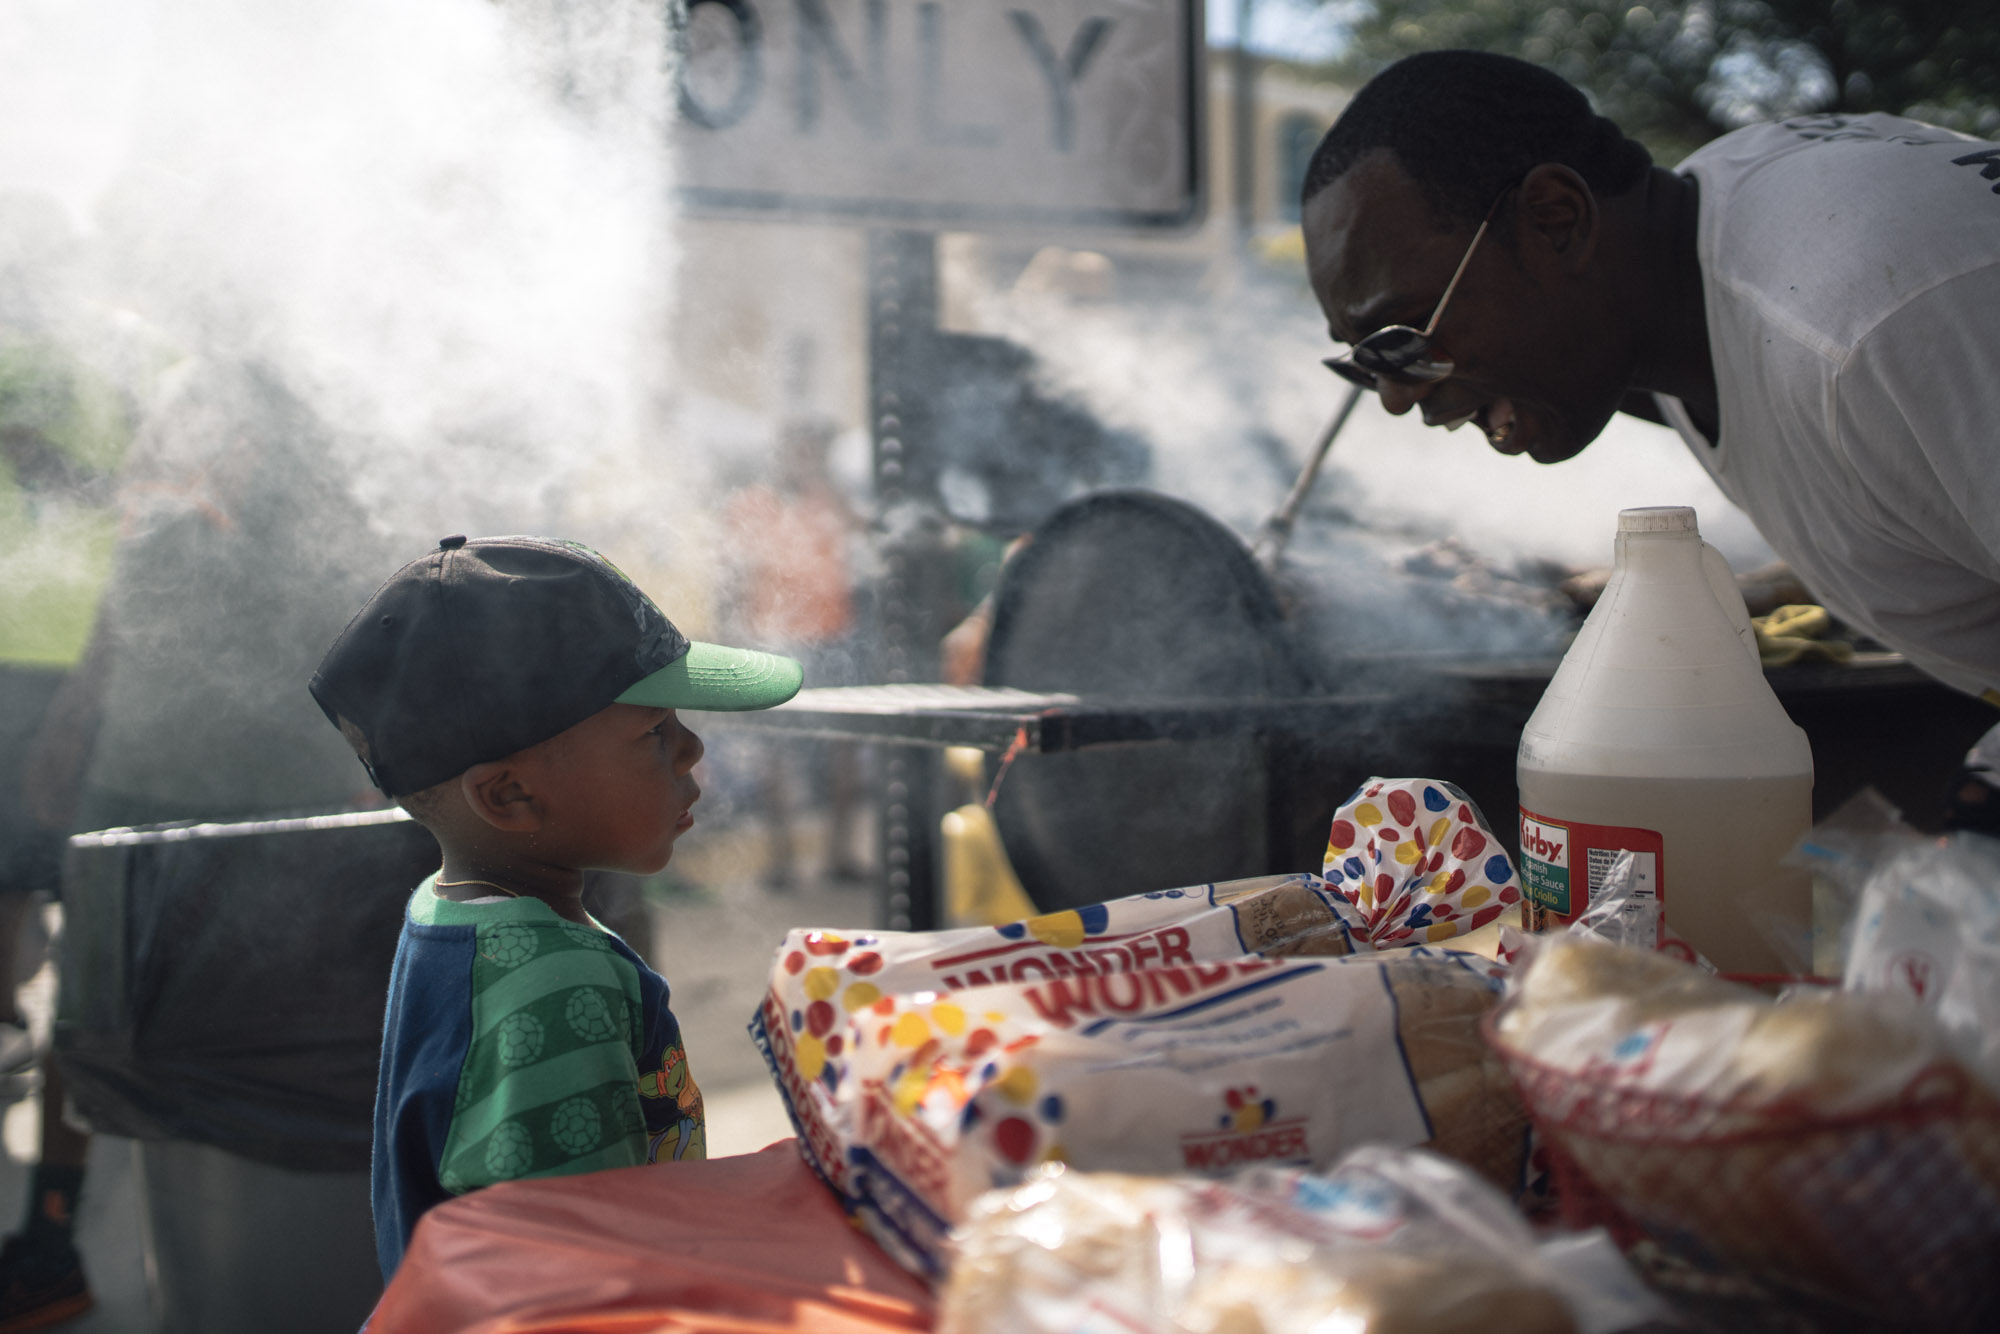 Soul Food - Overtown Music & Arts Festival serves up soul food in historic Overtown. 2017